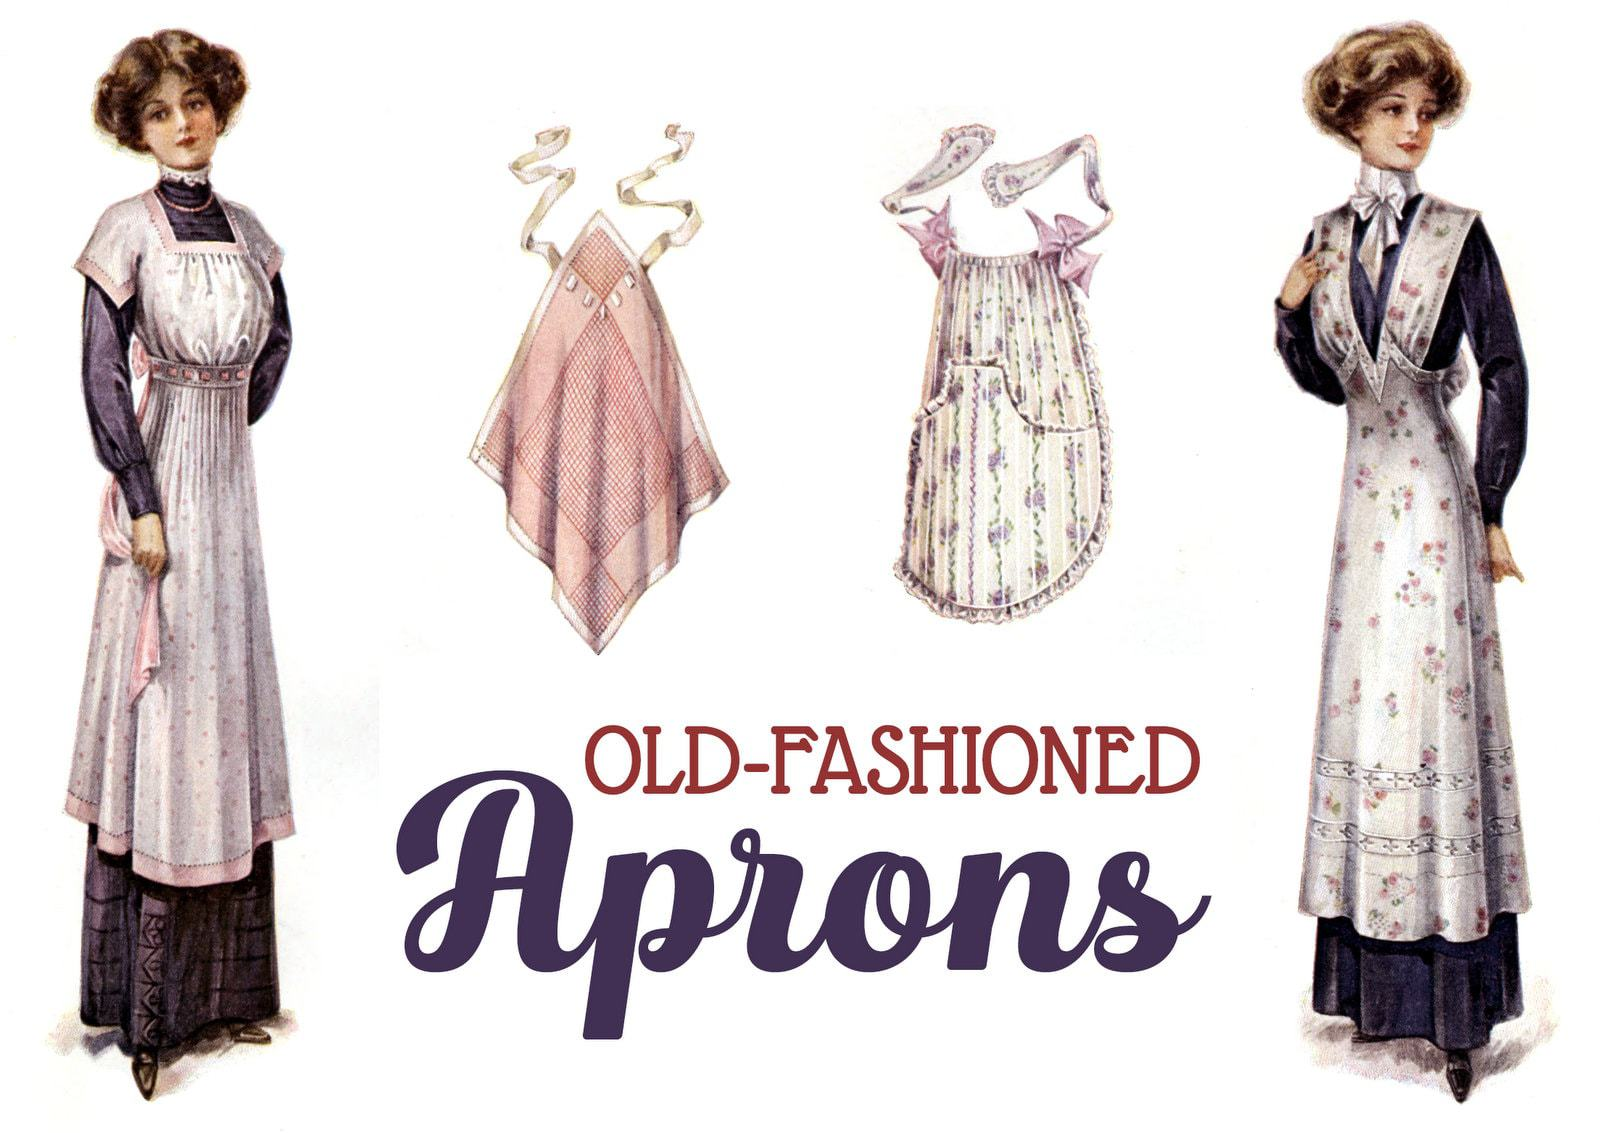 Old-fashioned aprons for women from 1911